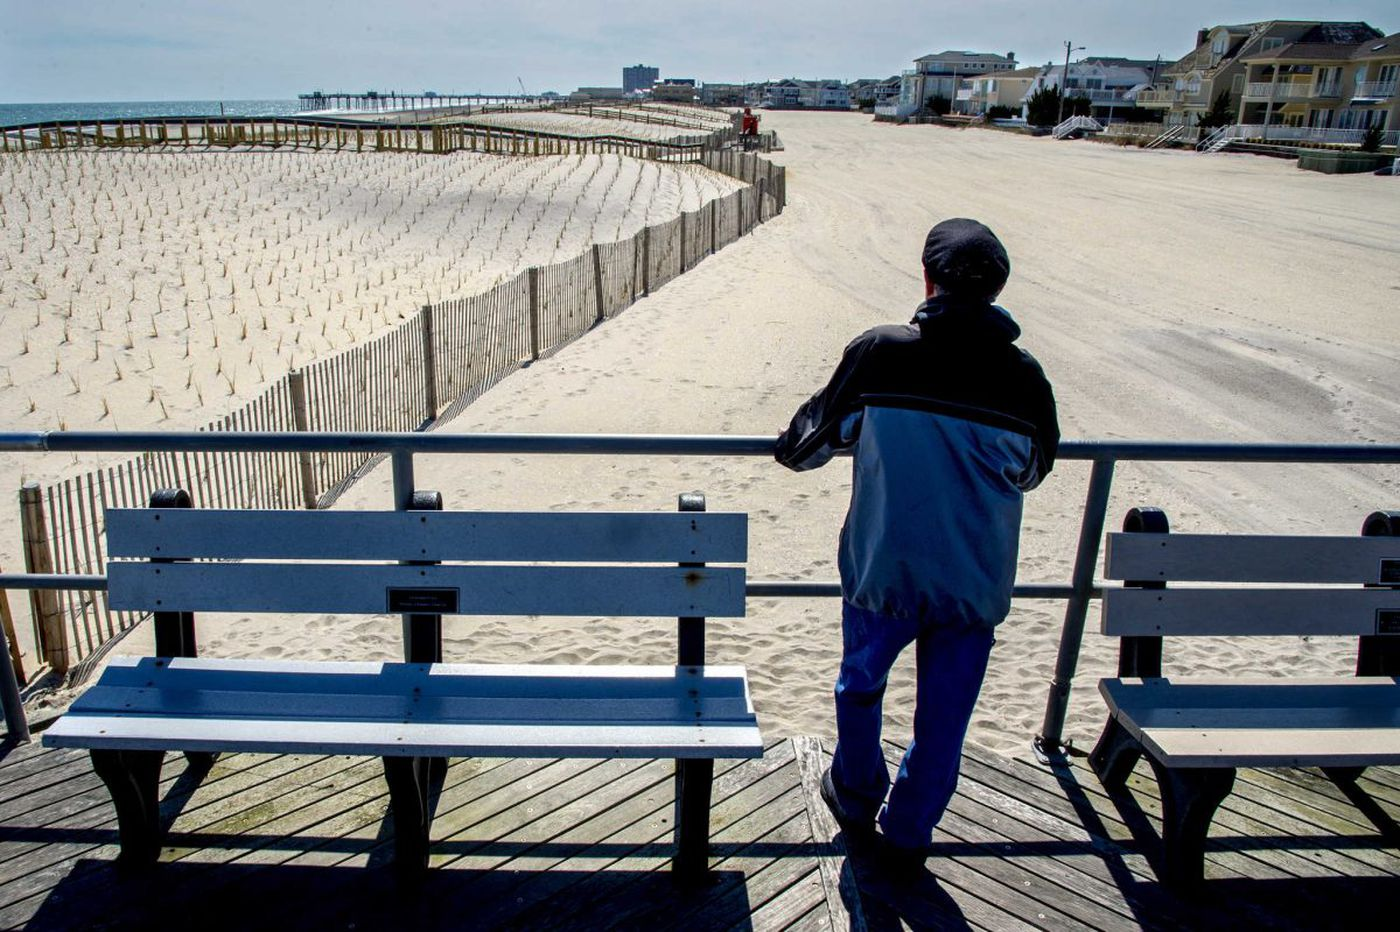 First the dunes. Now, Margate contemplates a boardwalk